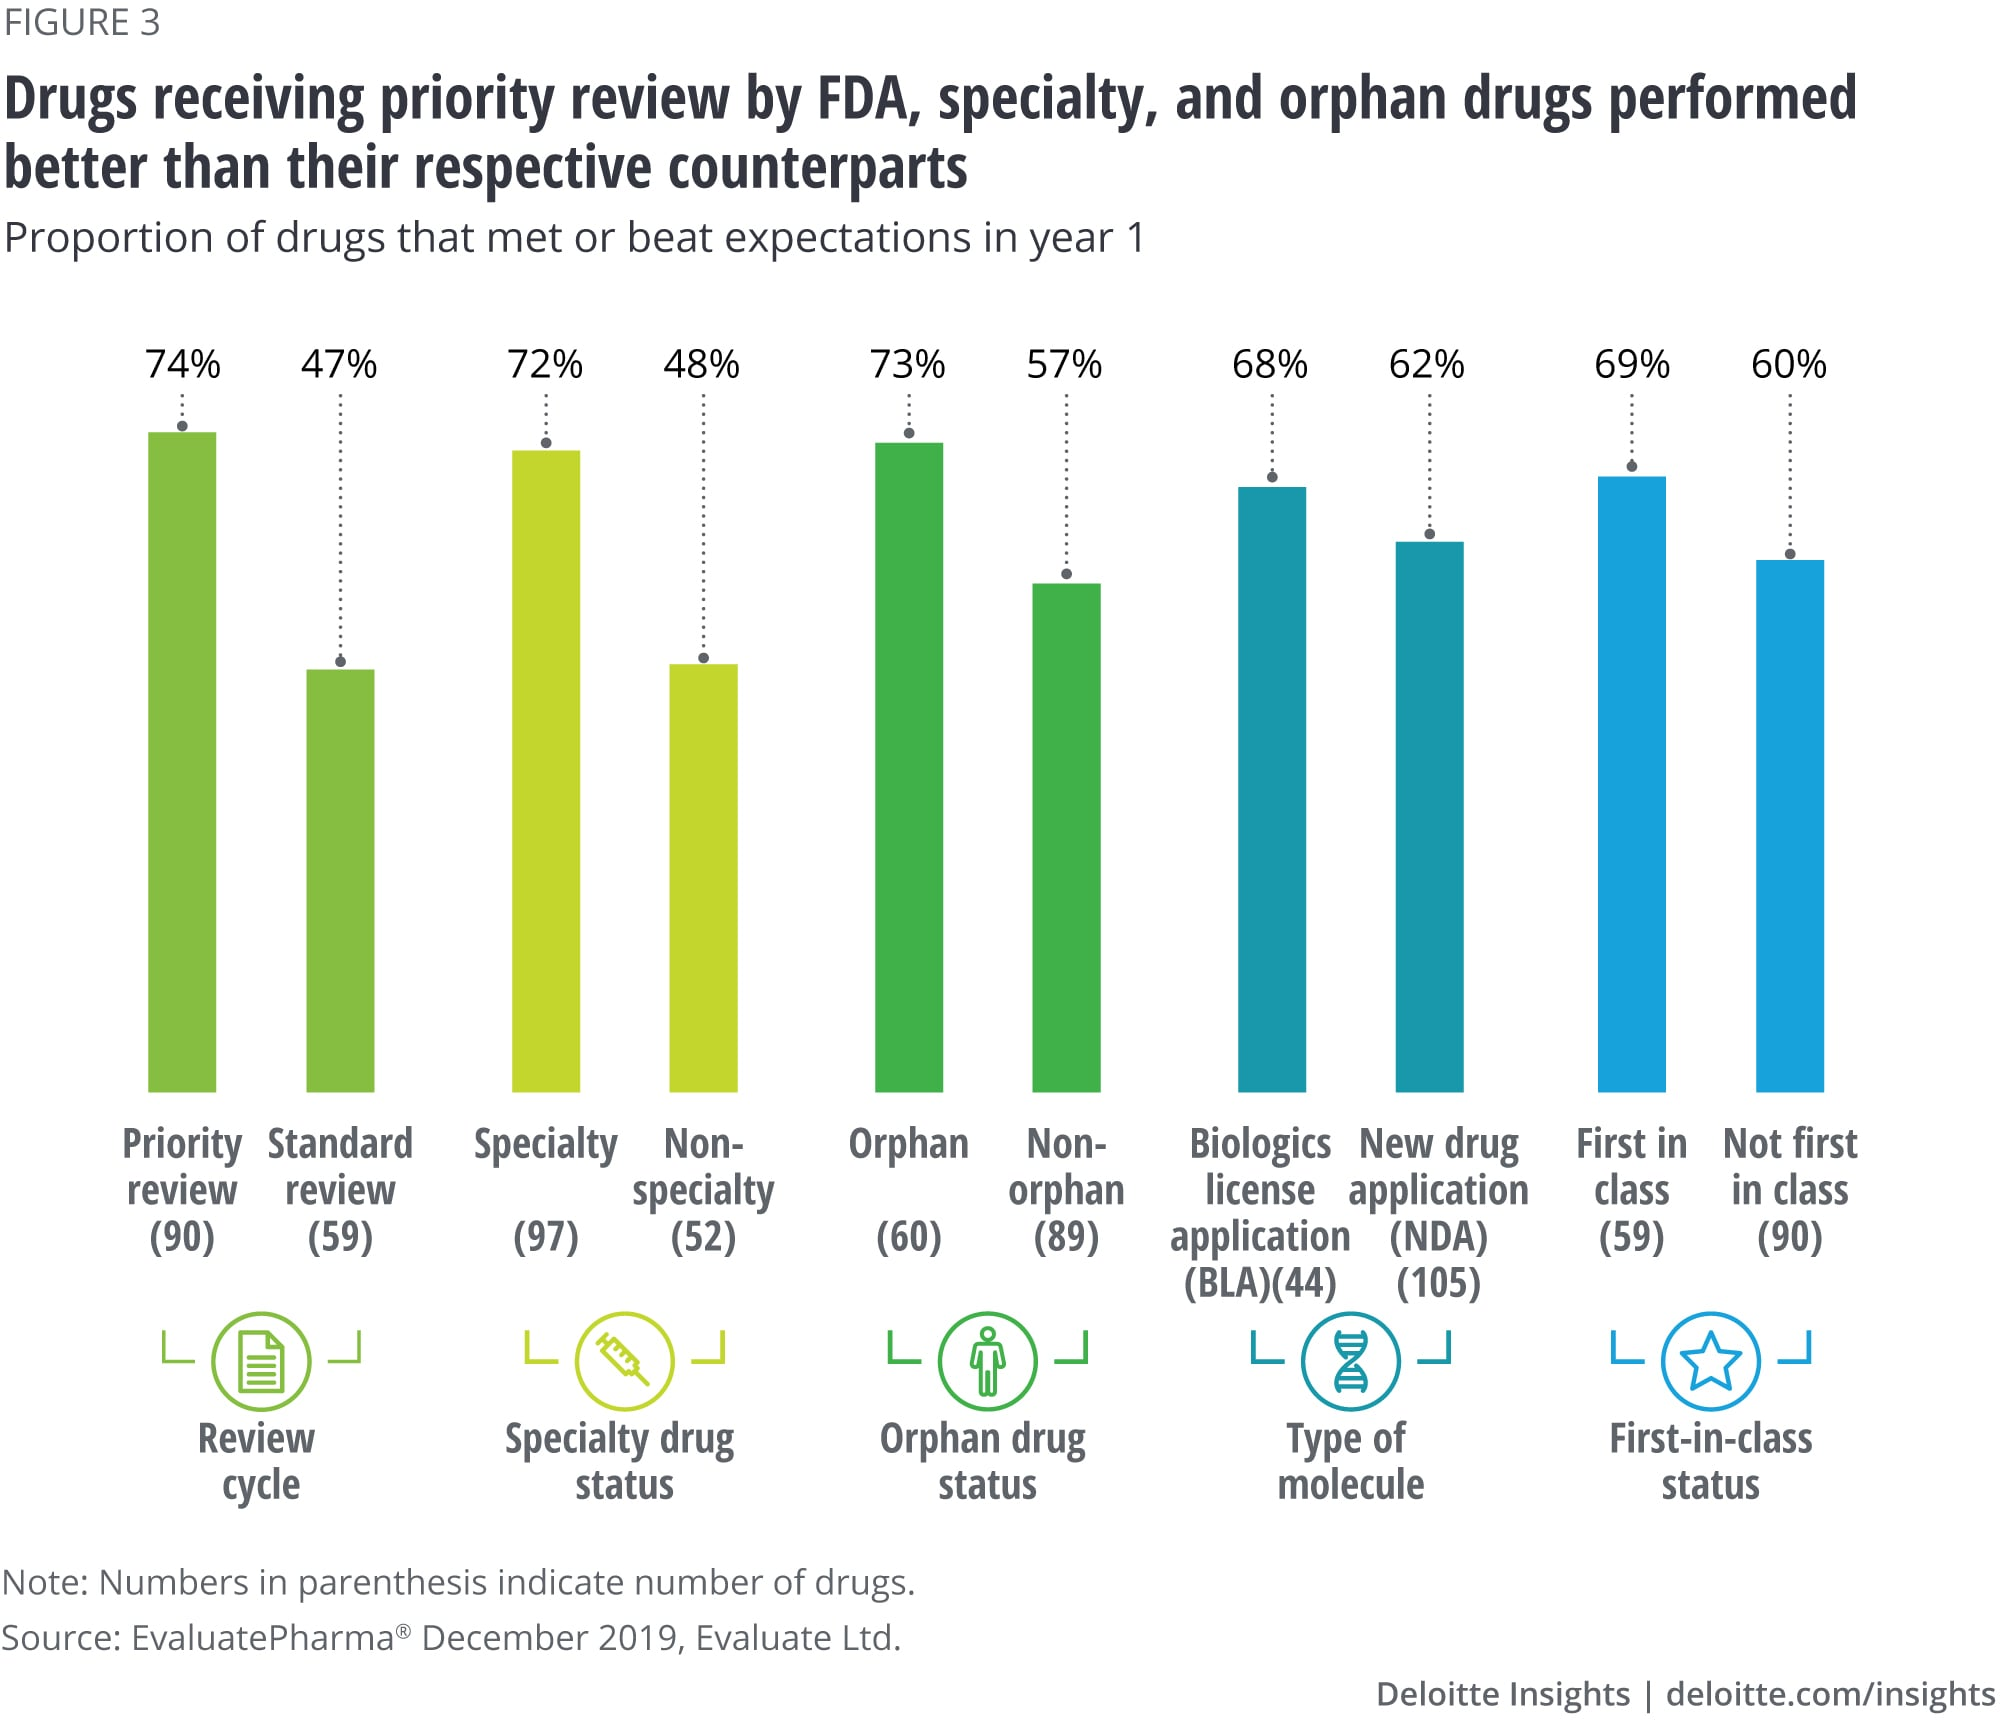 Drugs receiving priority review by FDA, specialty, and orphan drugs performed better than their respective counterparts